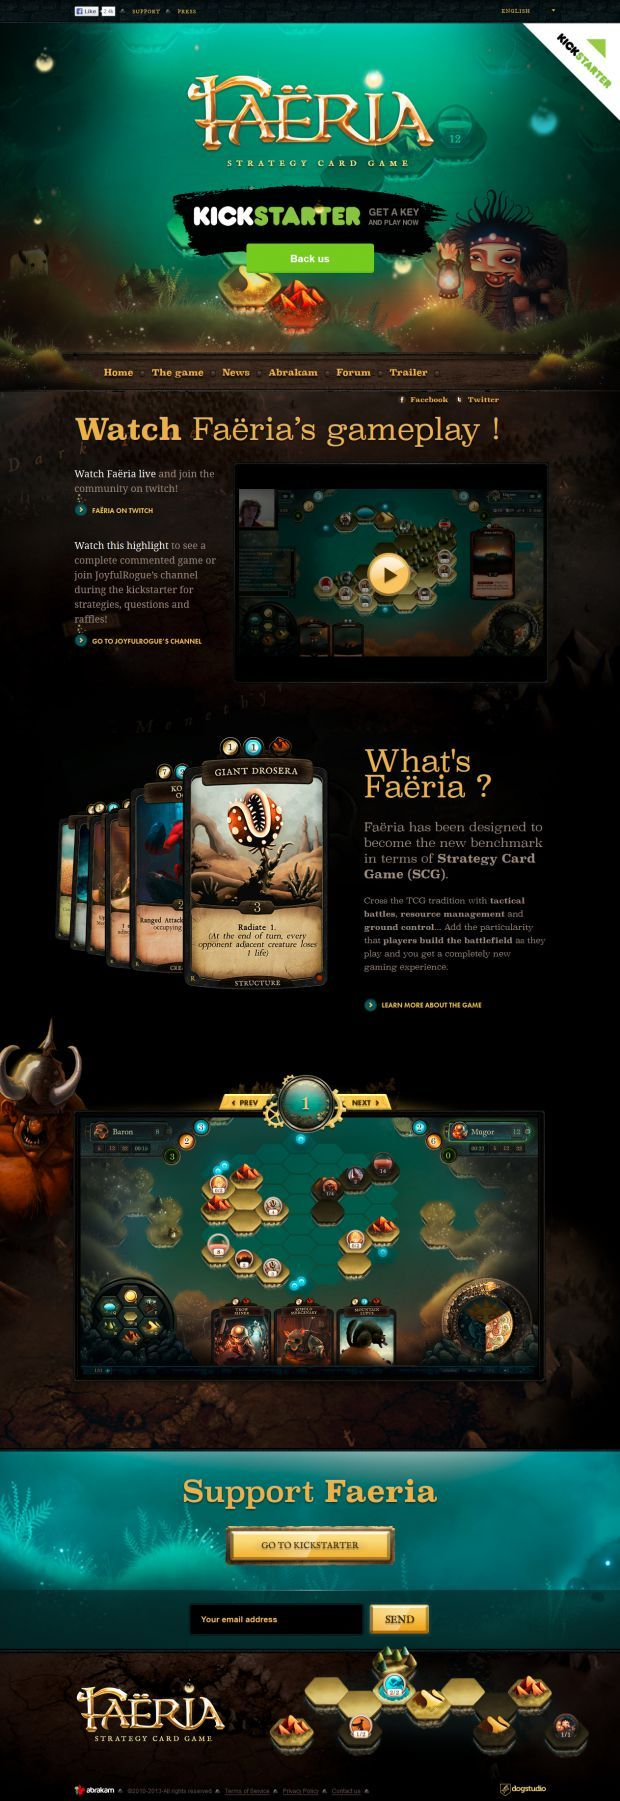 Faeria - Strategy Card Game